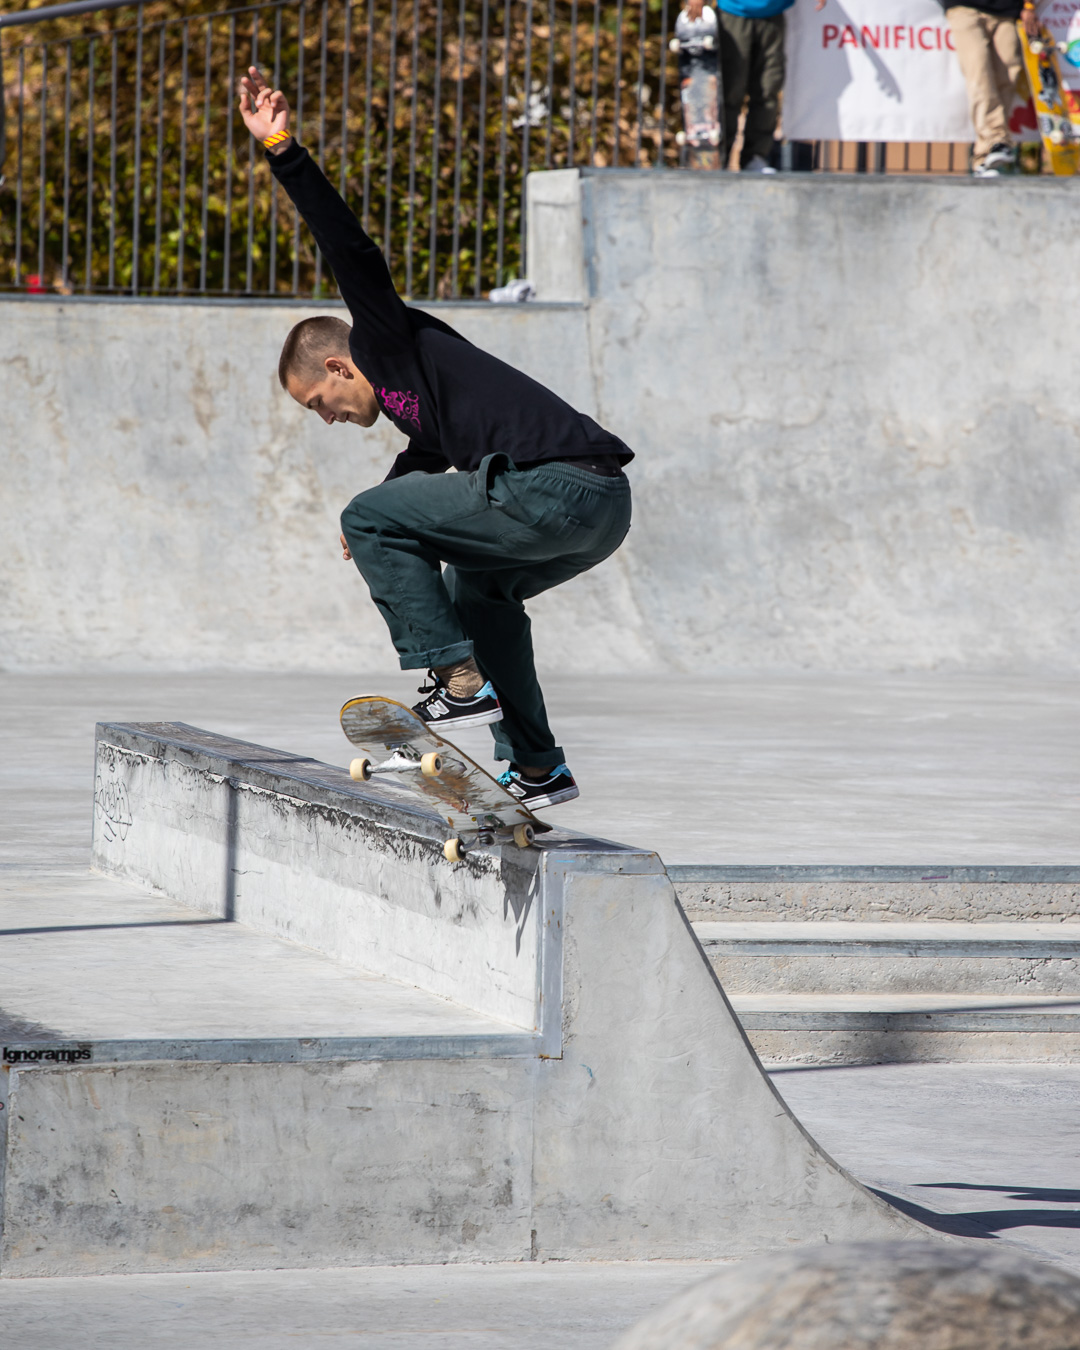 CIS Street 2020 - Jack Thompson fakie bs nosegrind - ph. Federico Romanello